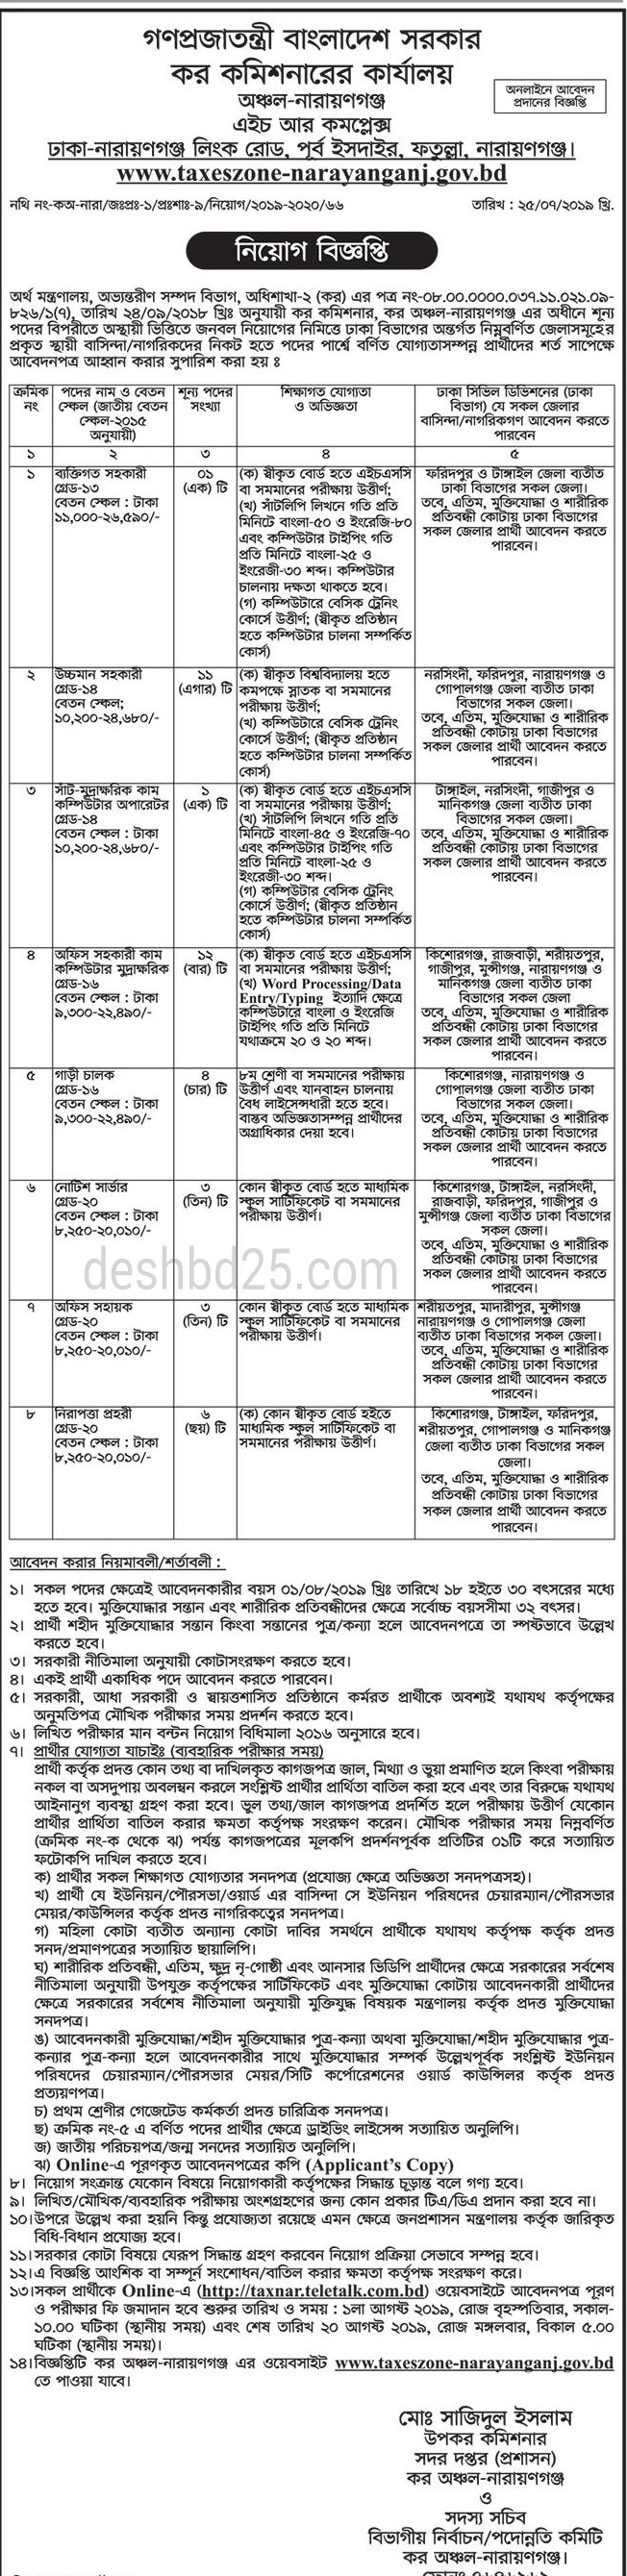 Tax commissioner job circular 2019